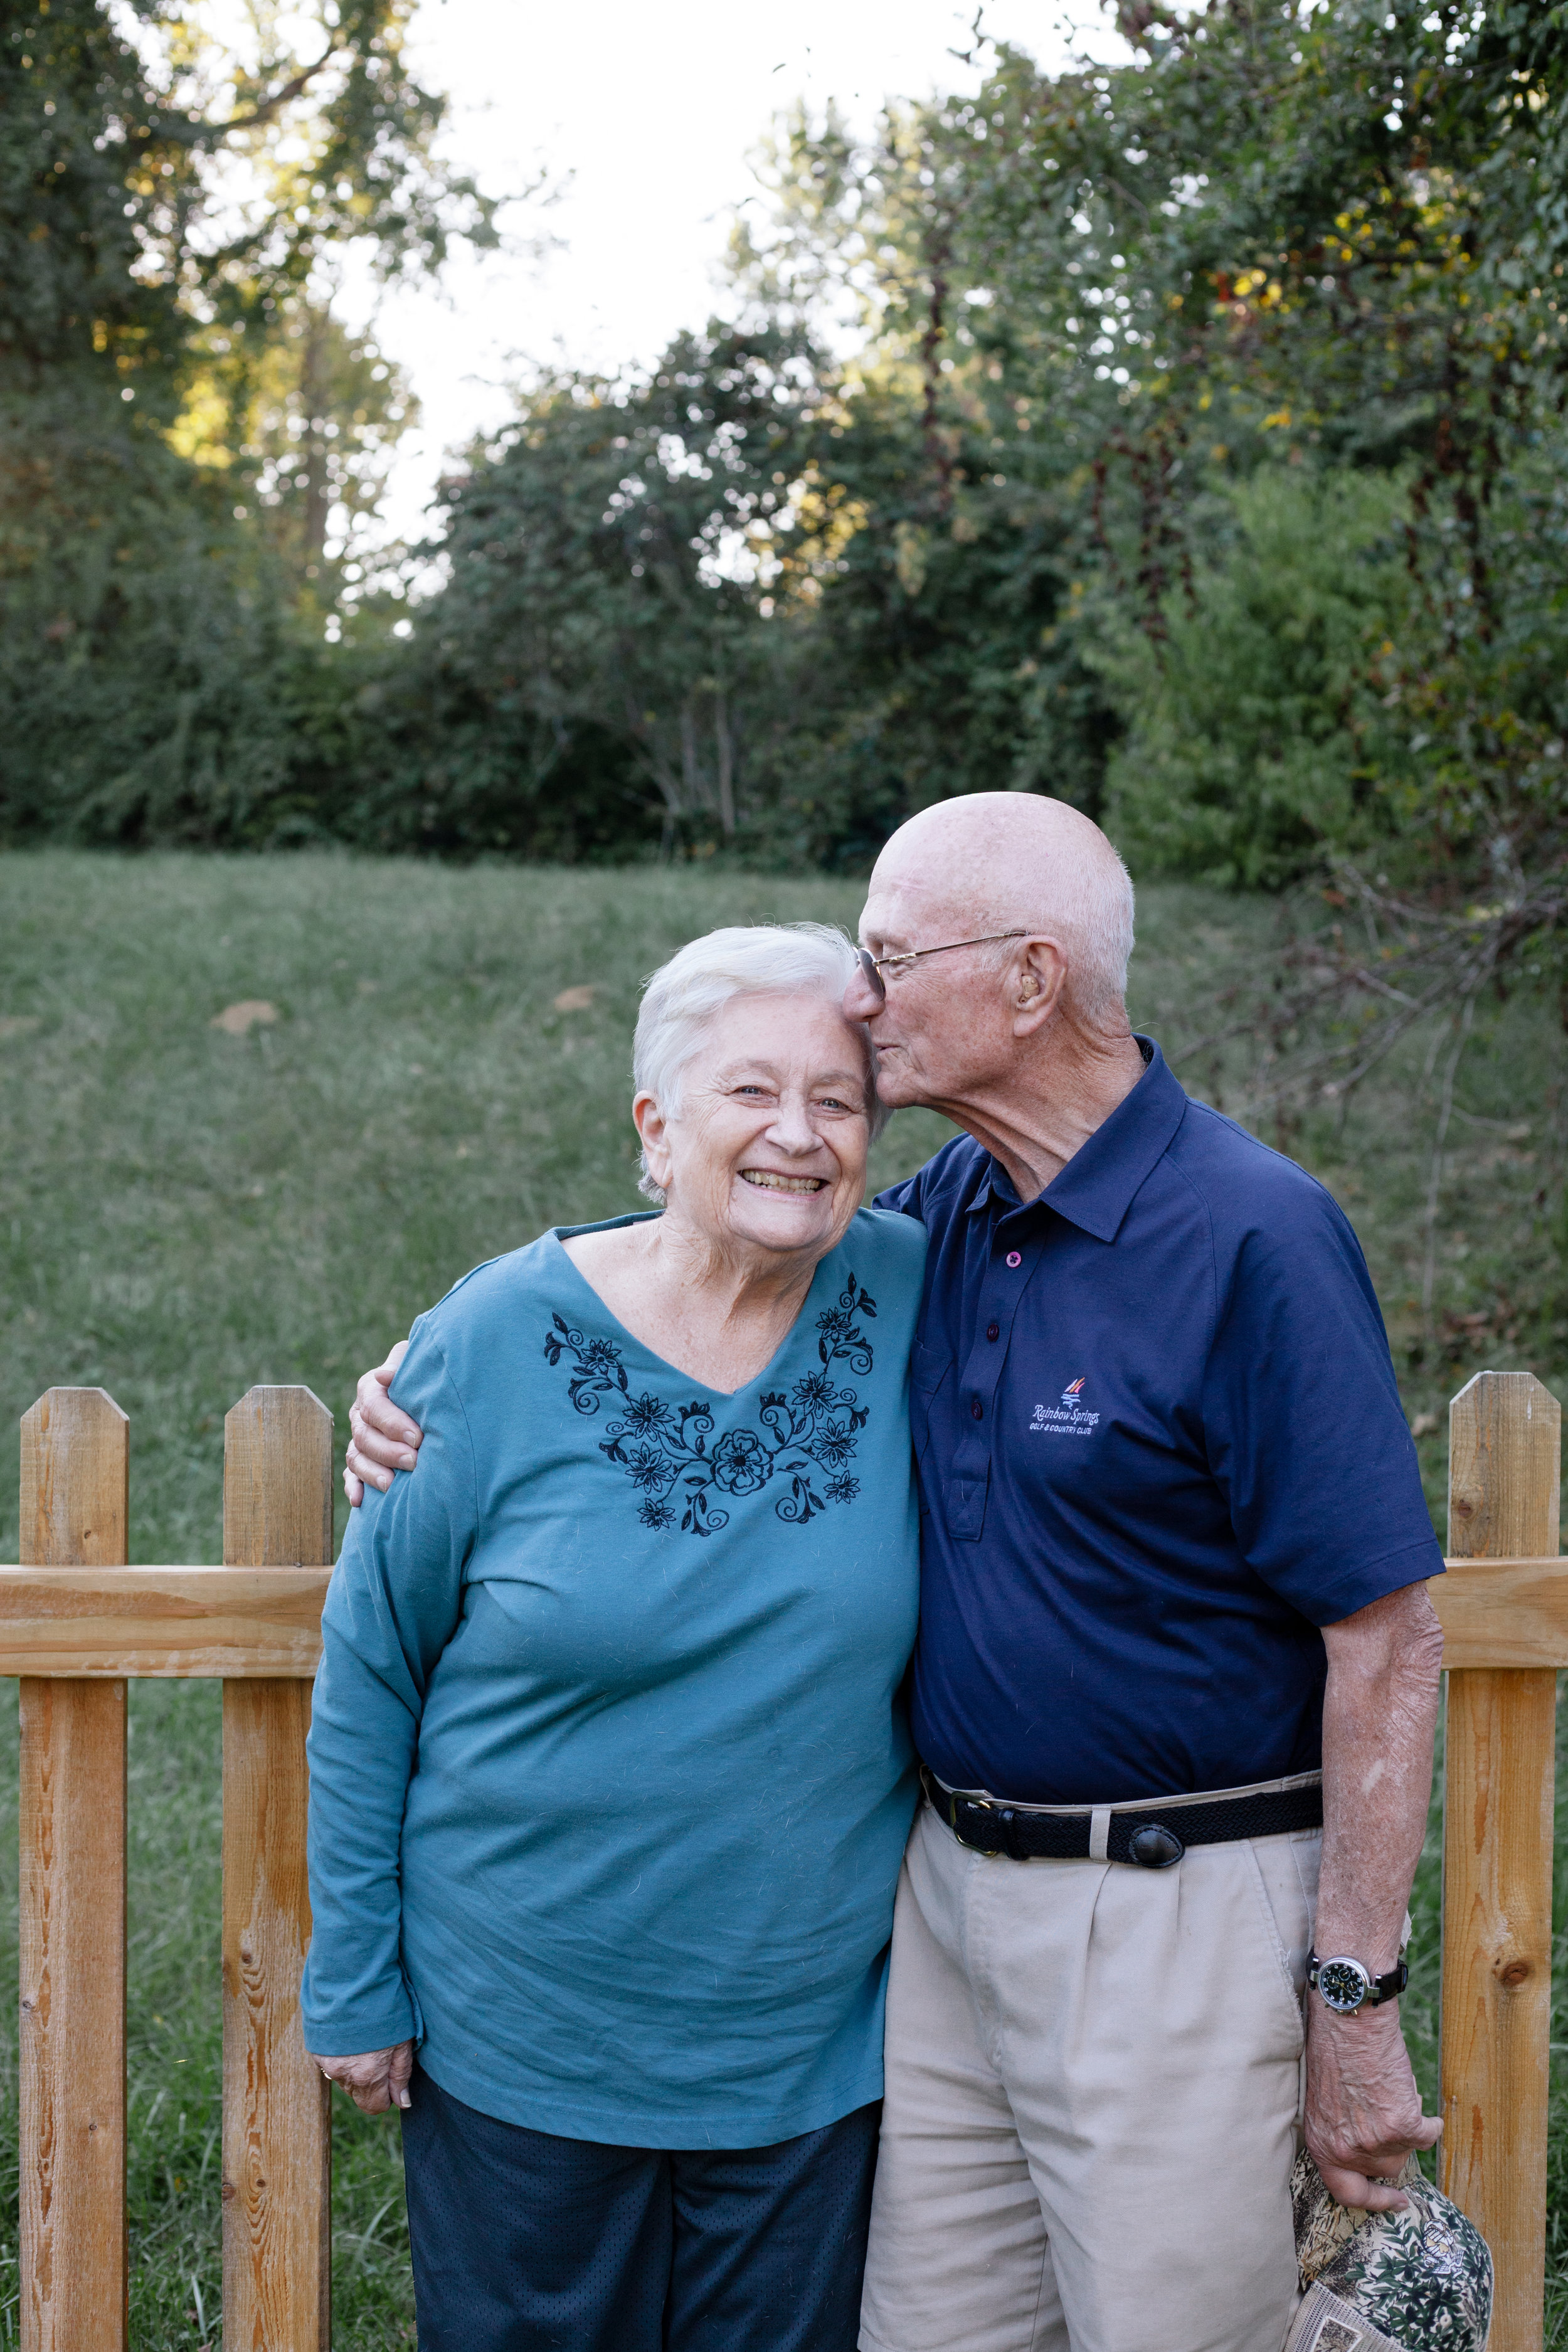 This is Grandma and Grandpa Slaughter. They have been married for 62 years, he is a Veteran, Retired Detective and Police Chief. We have so much love for these two.